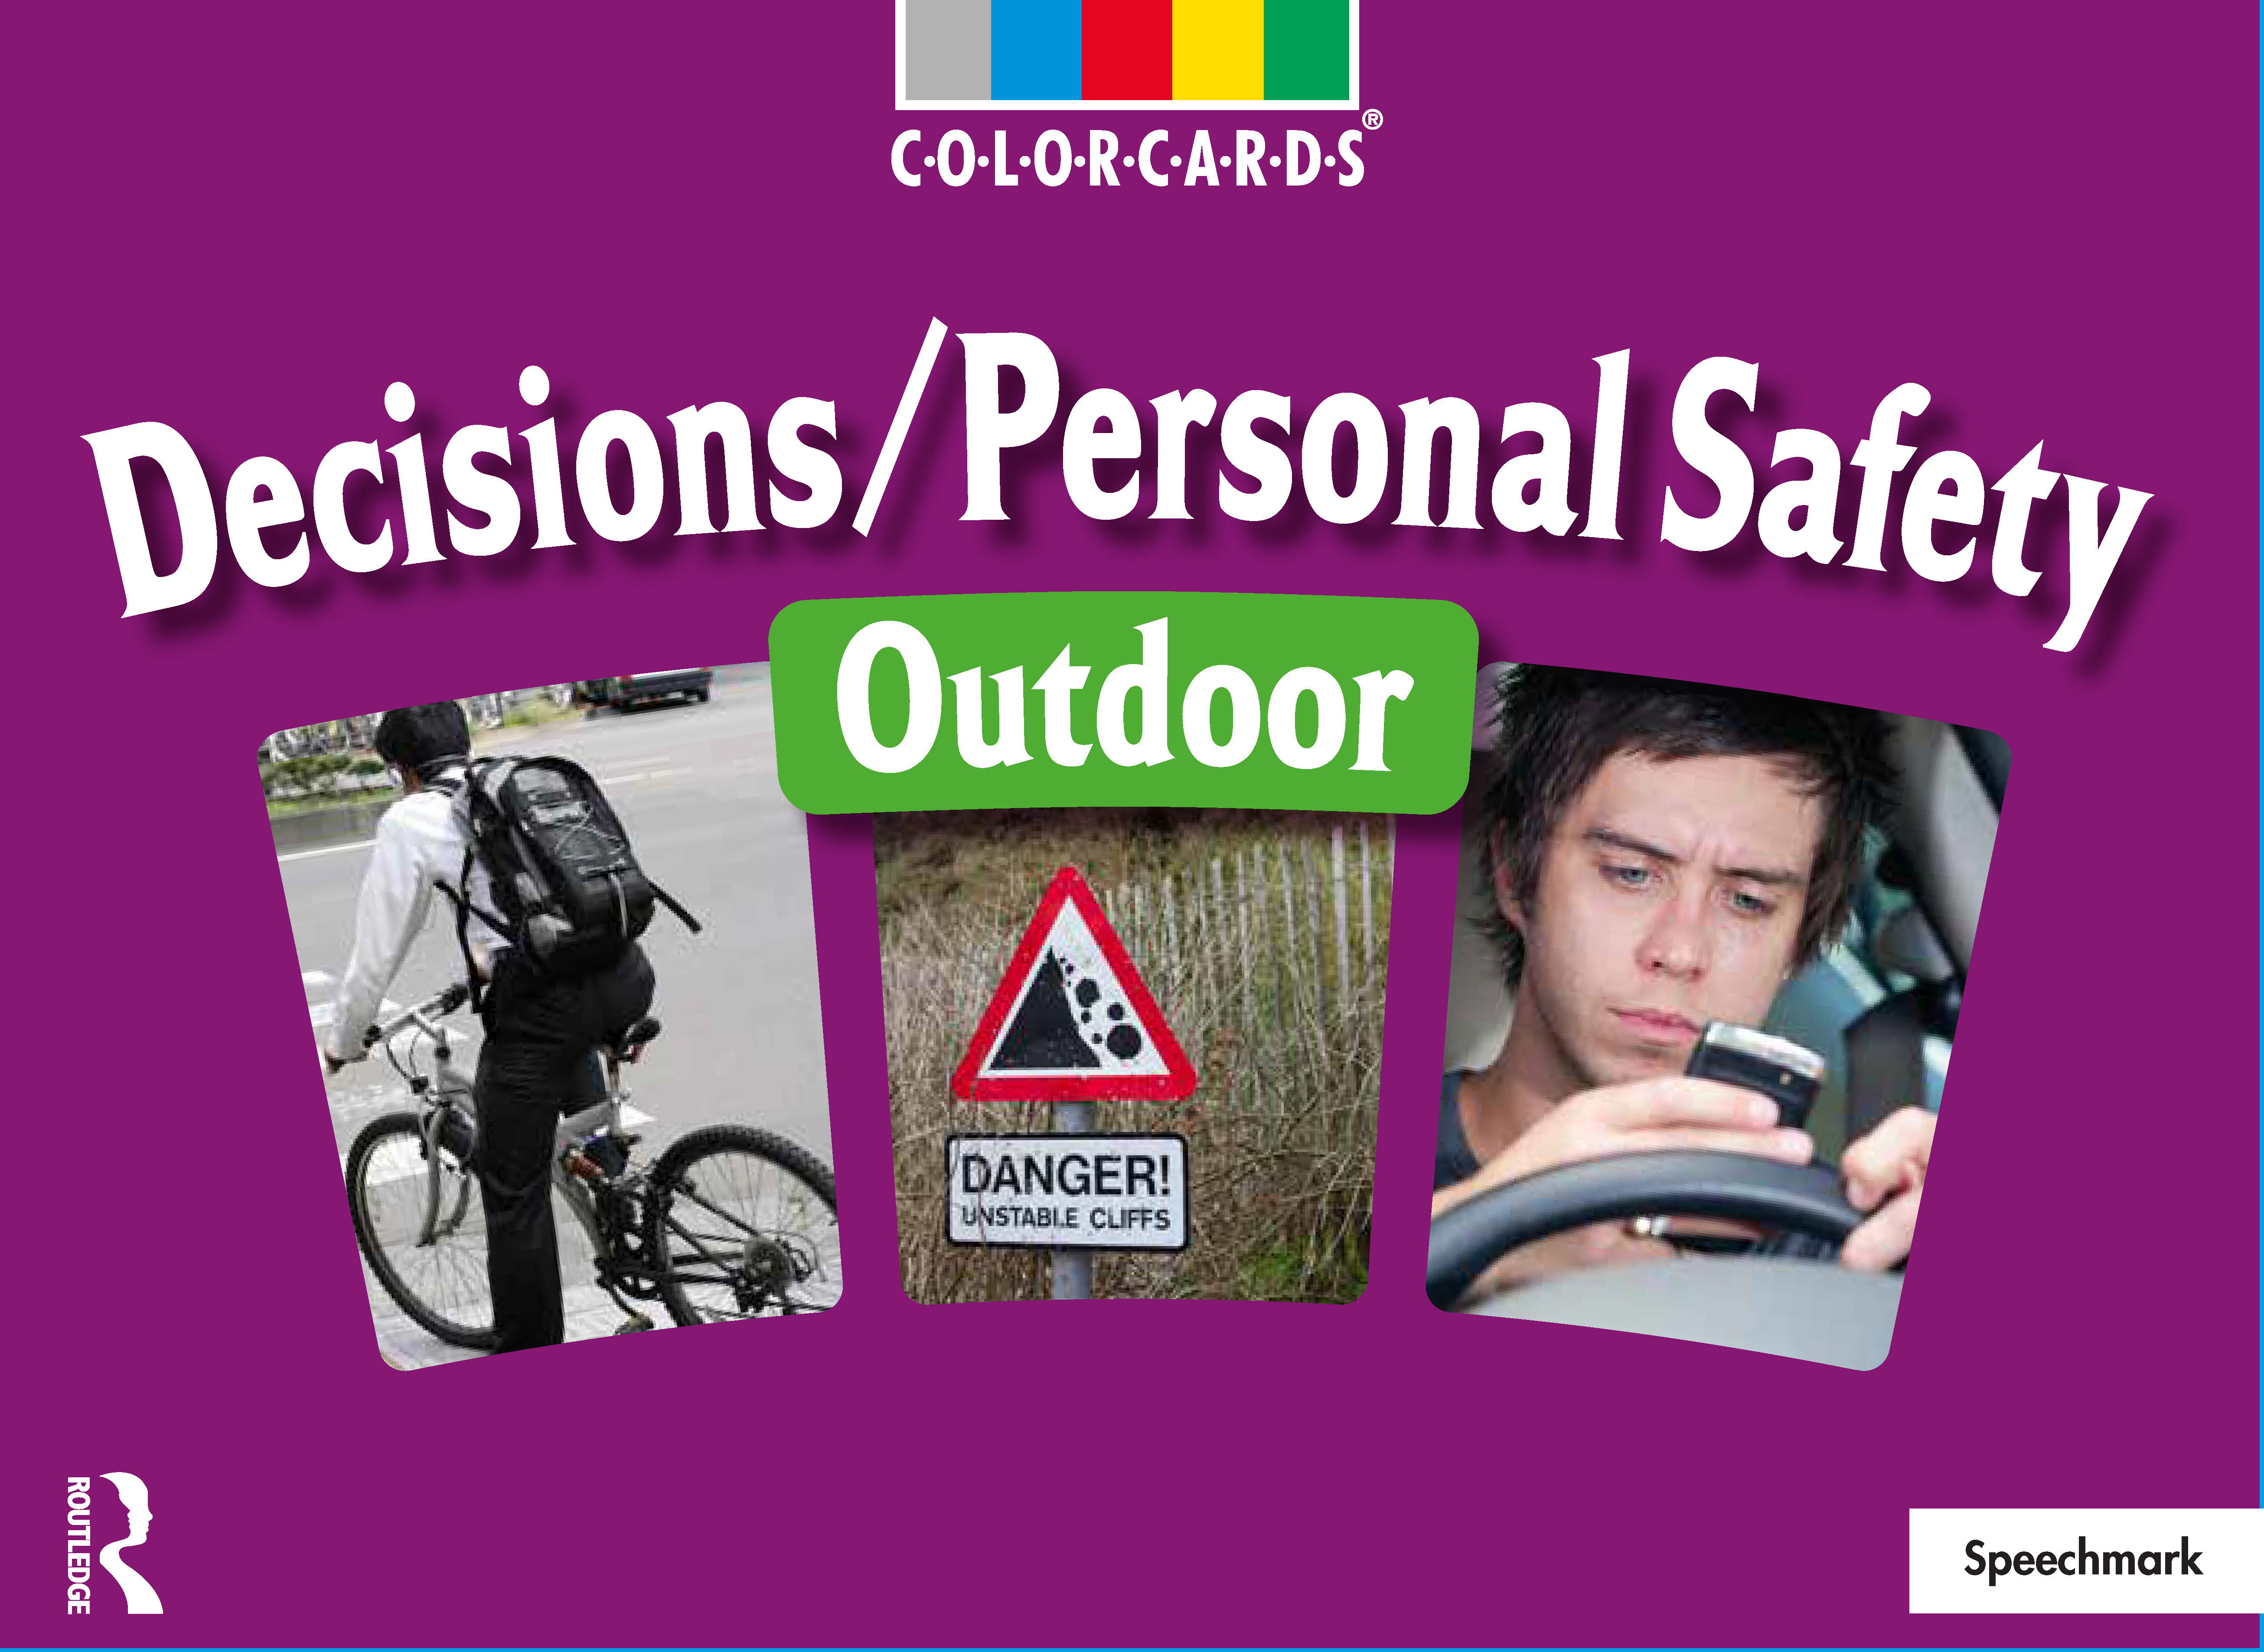 Decisions / Personal Safety - Outdoors book cover